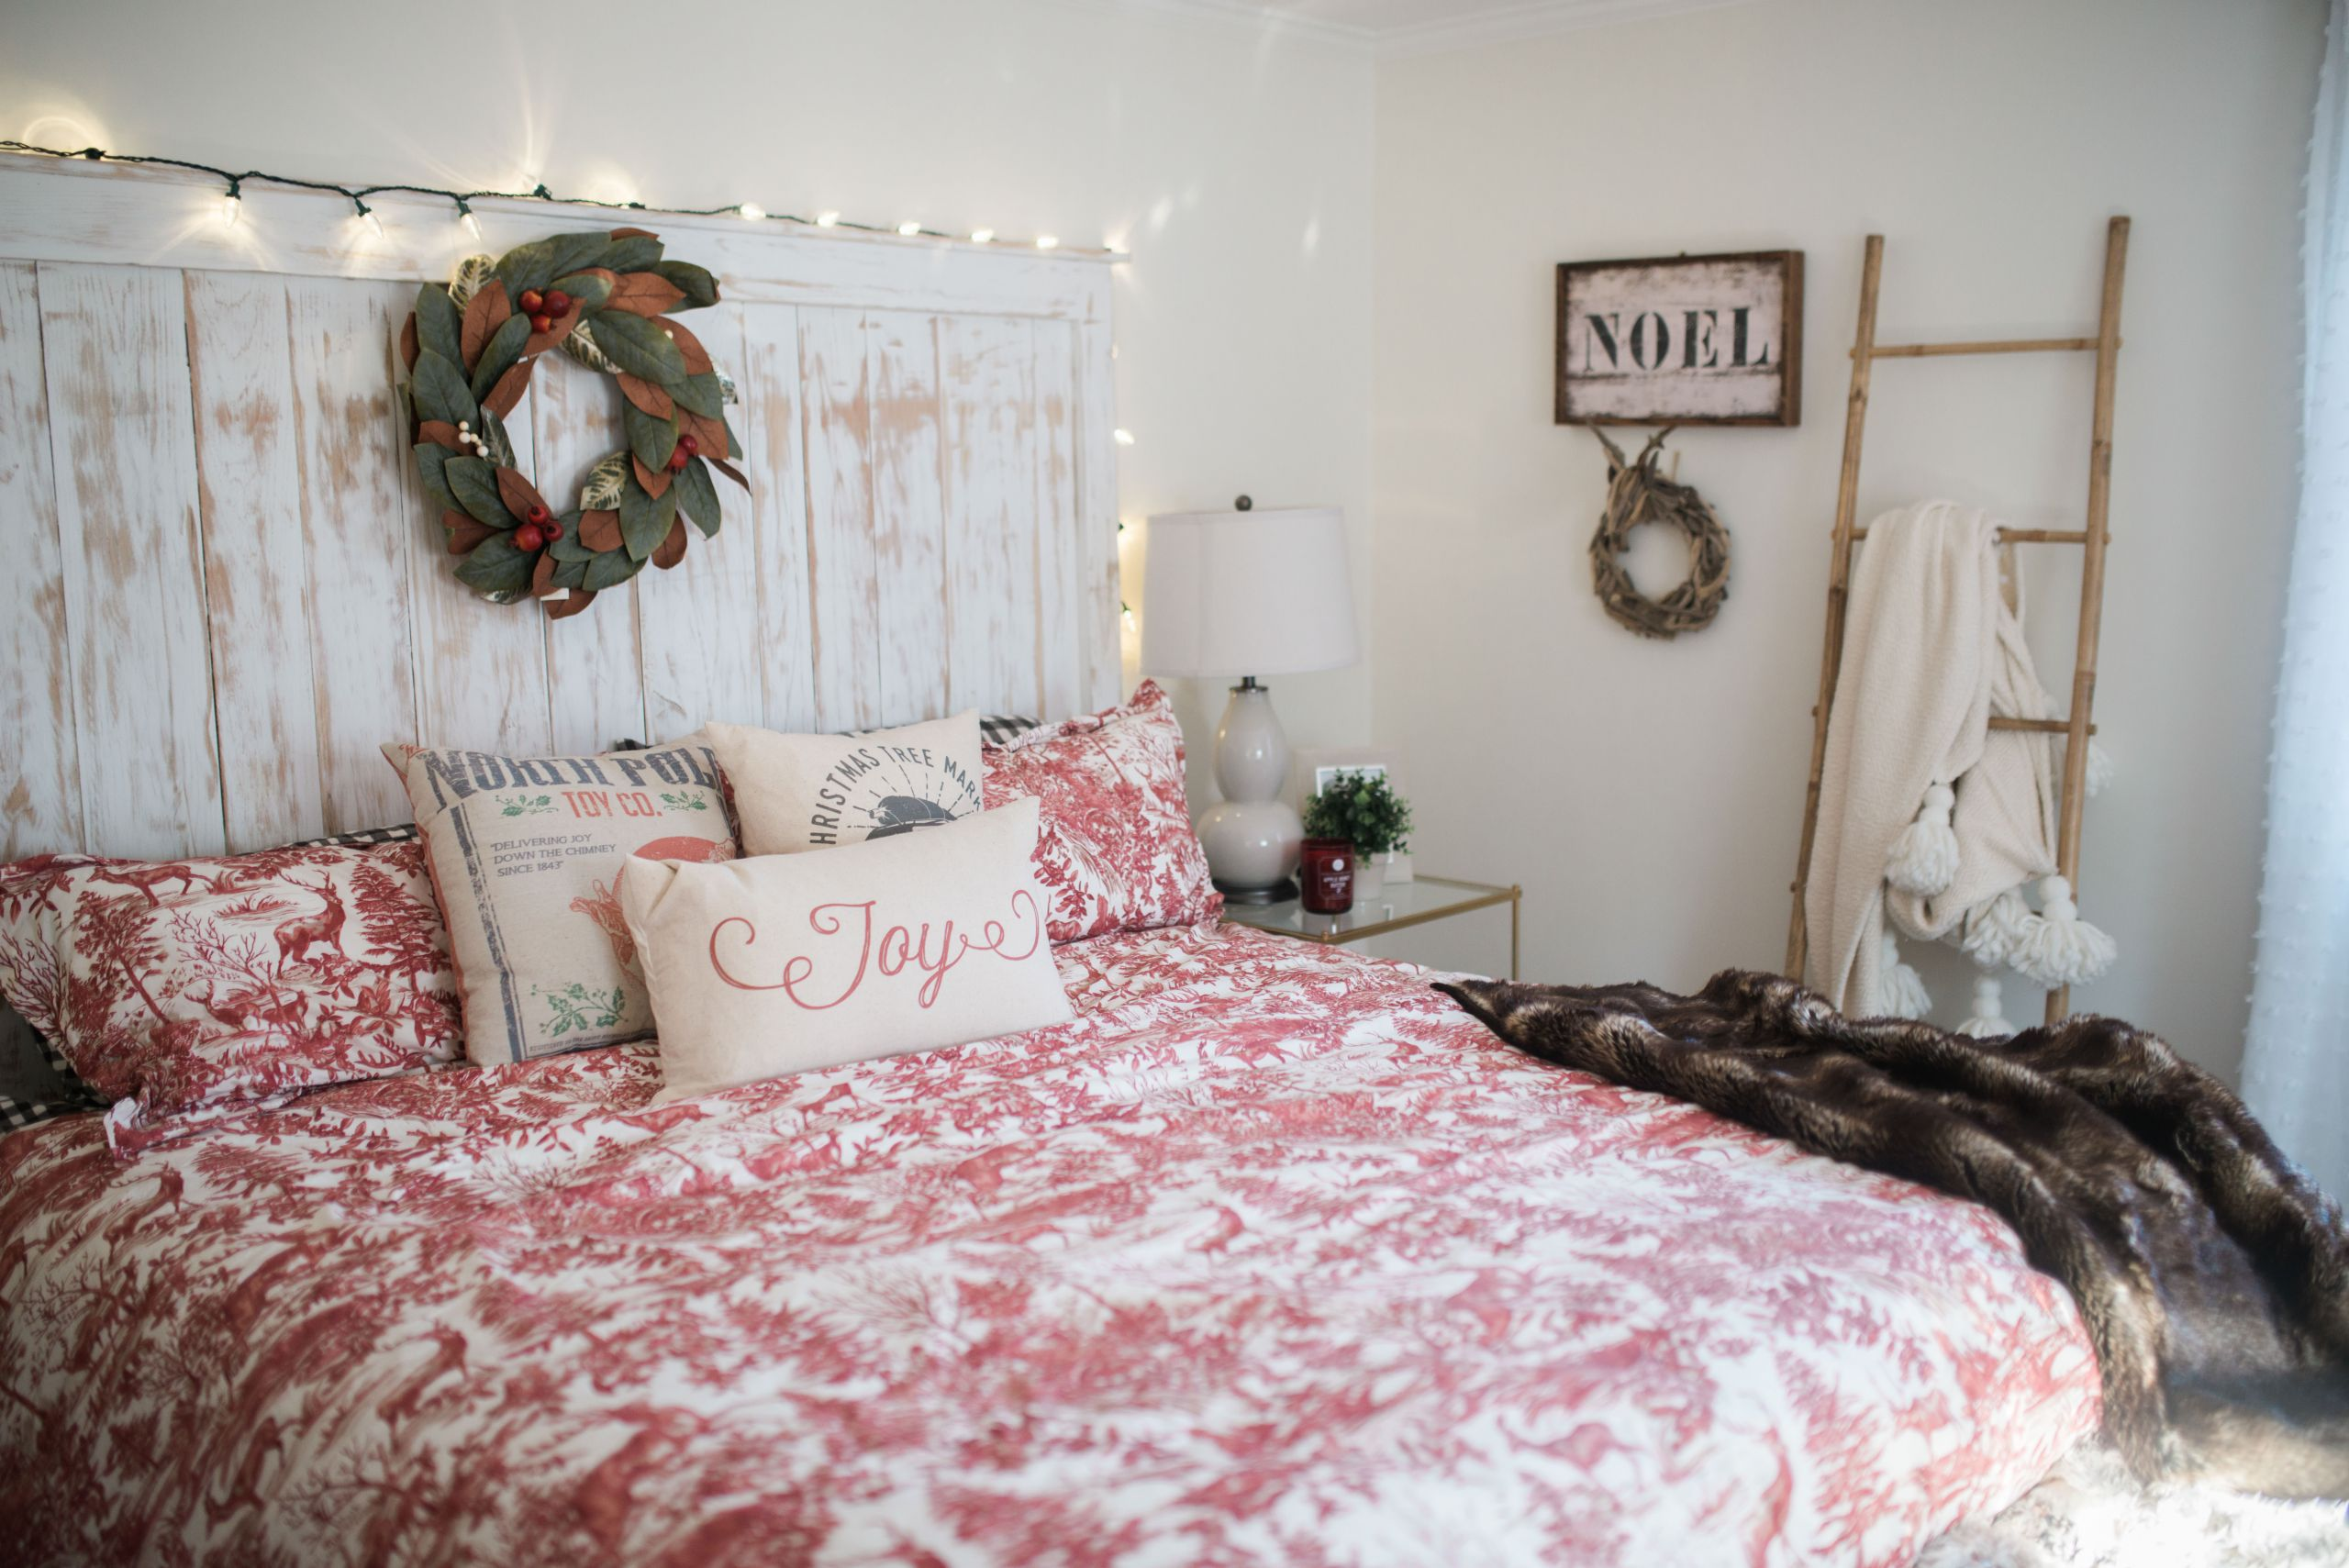 Wall Pictures For Bedroom  Our Bedroom holiday decor Bedroom Wall Decorations